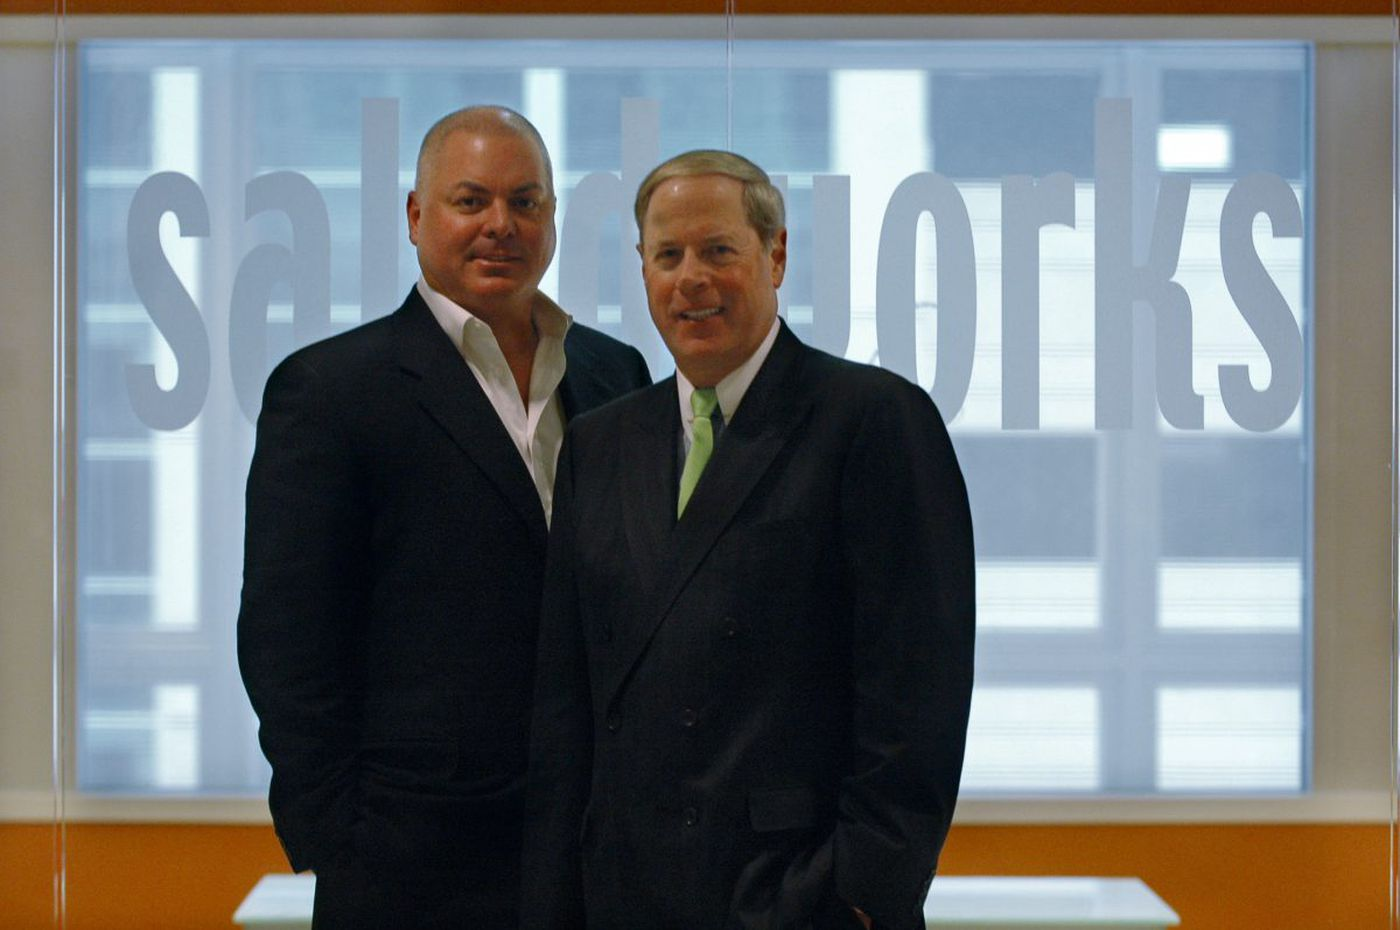 Why a promising Saladworks partnership got tossed